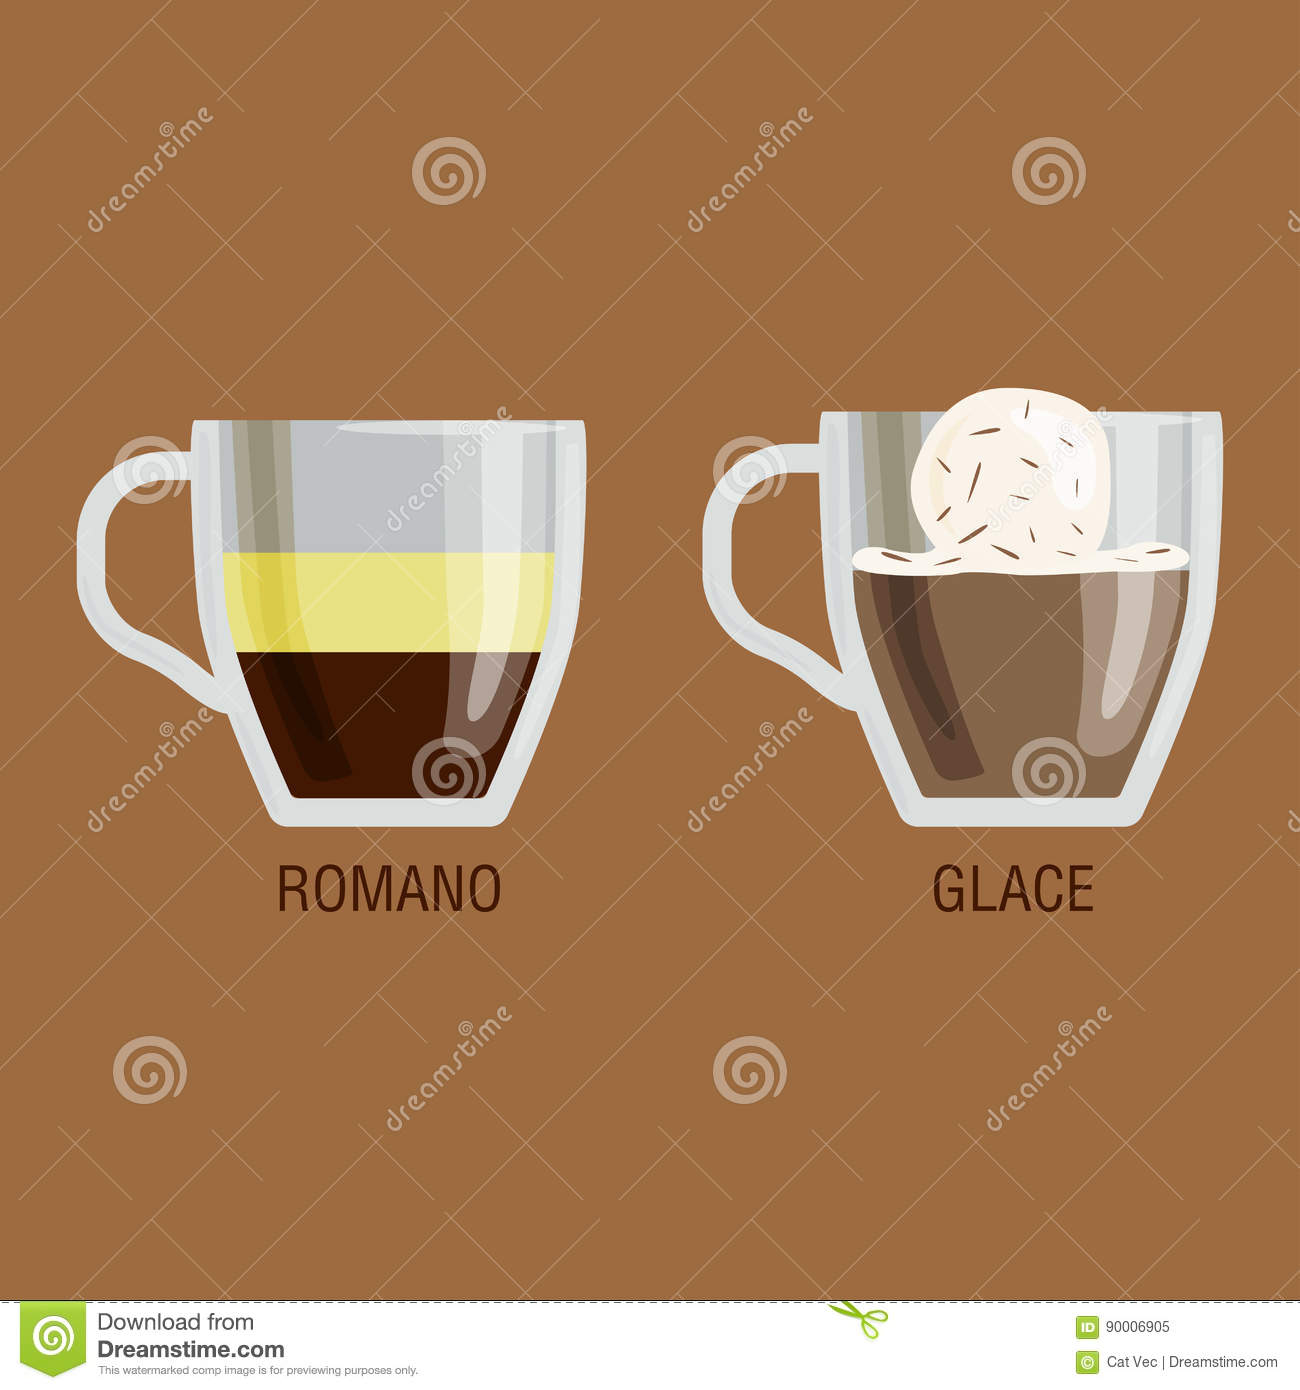 Different Types Of Foam Set Of Different Transparent Cups Of Coffee Types Mug With Foam